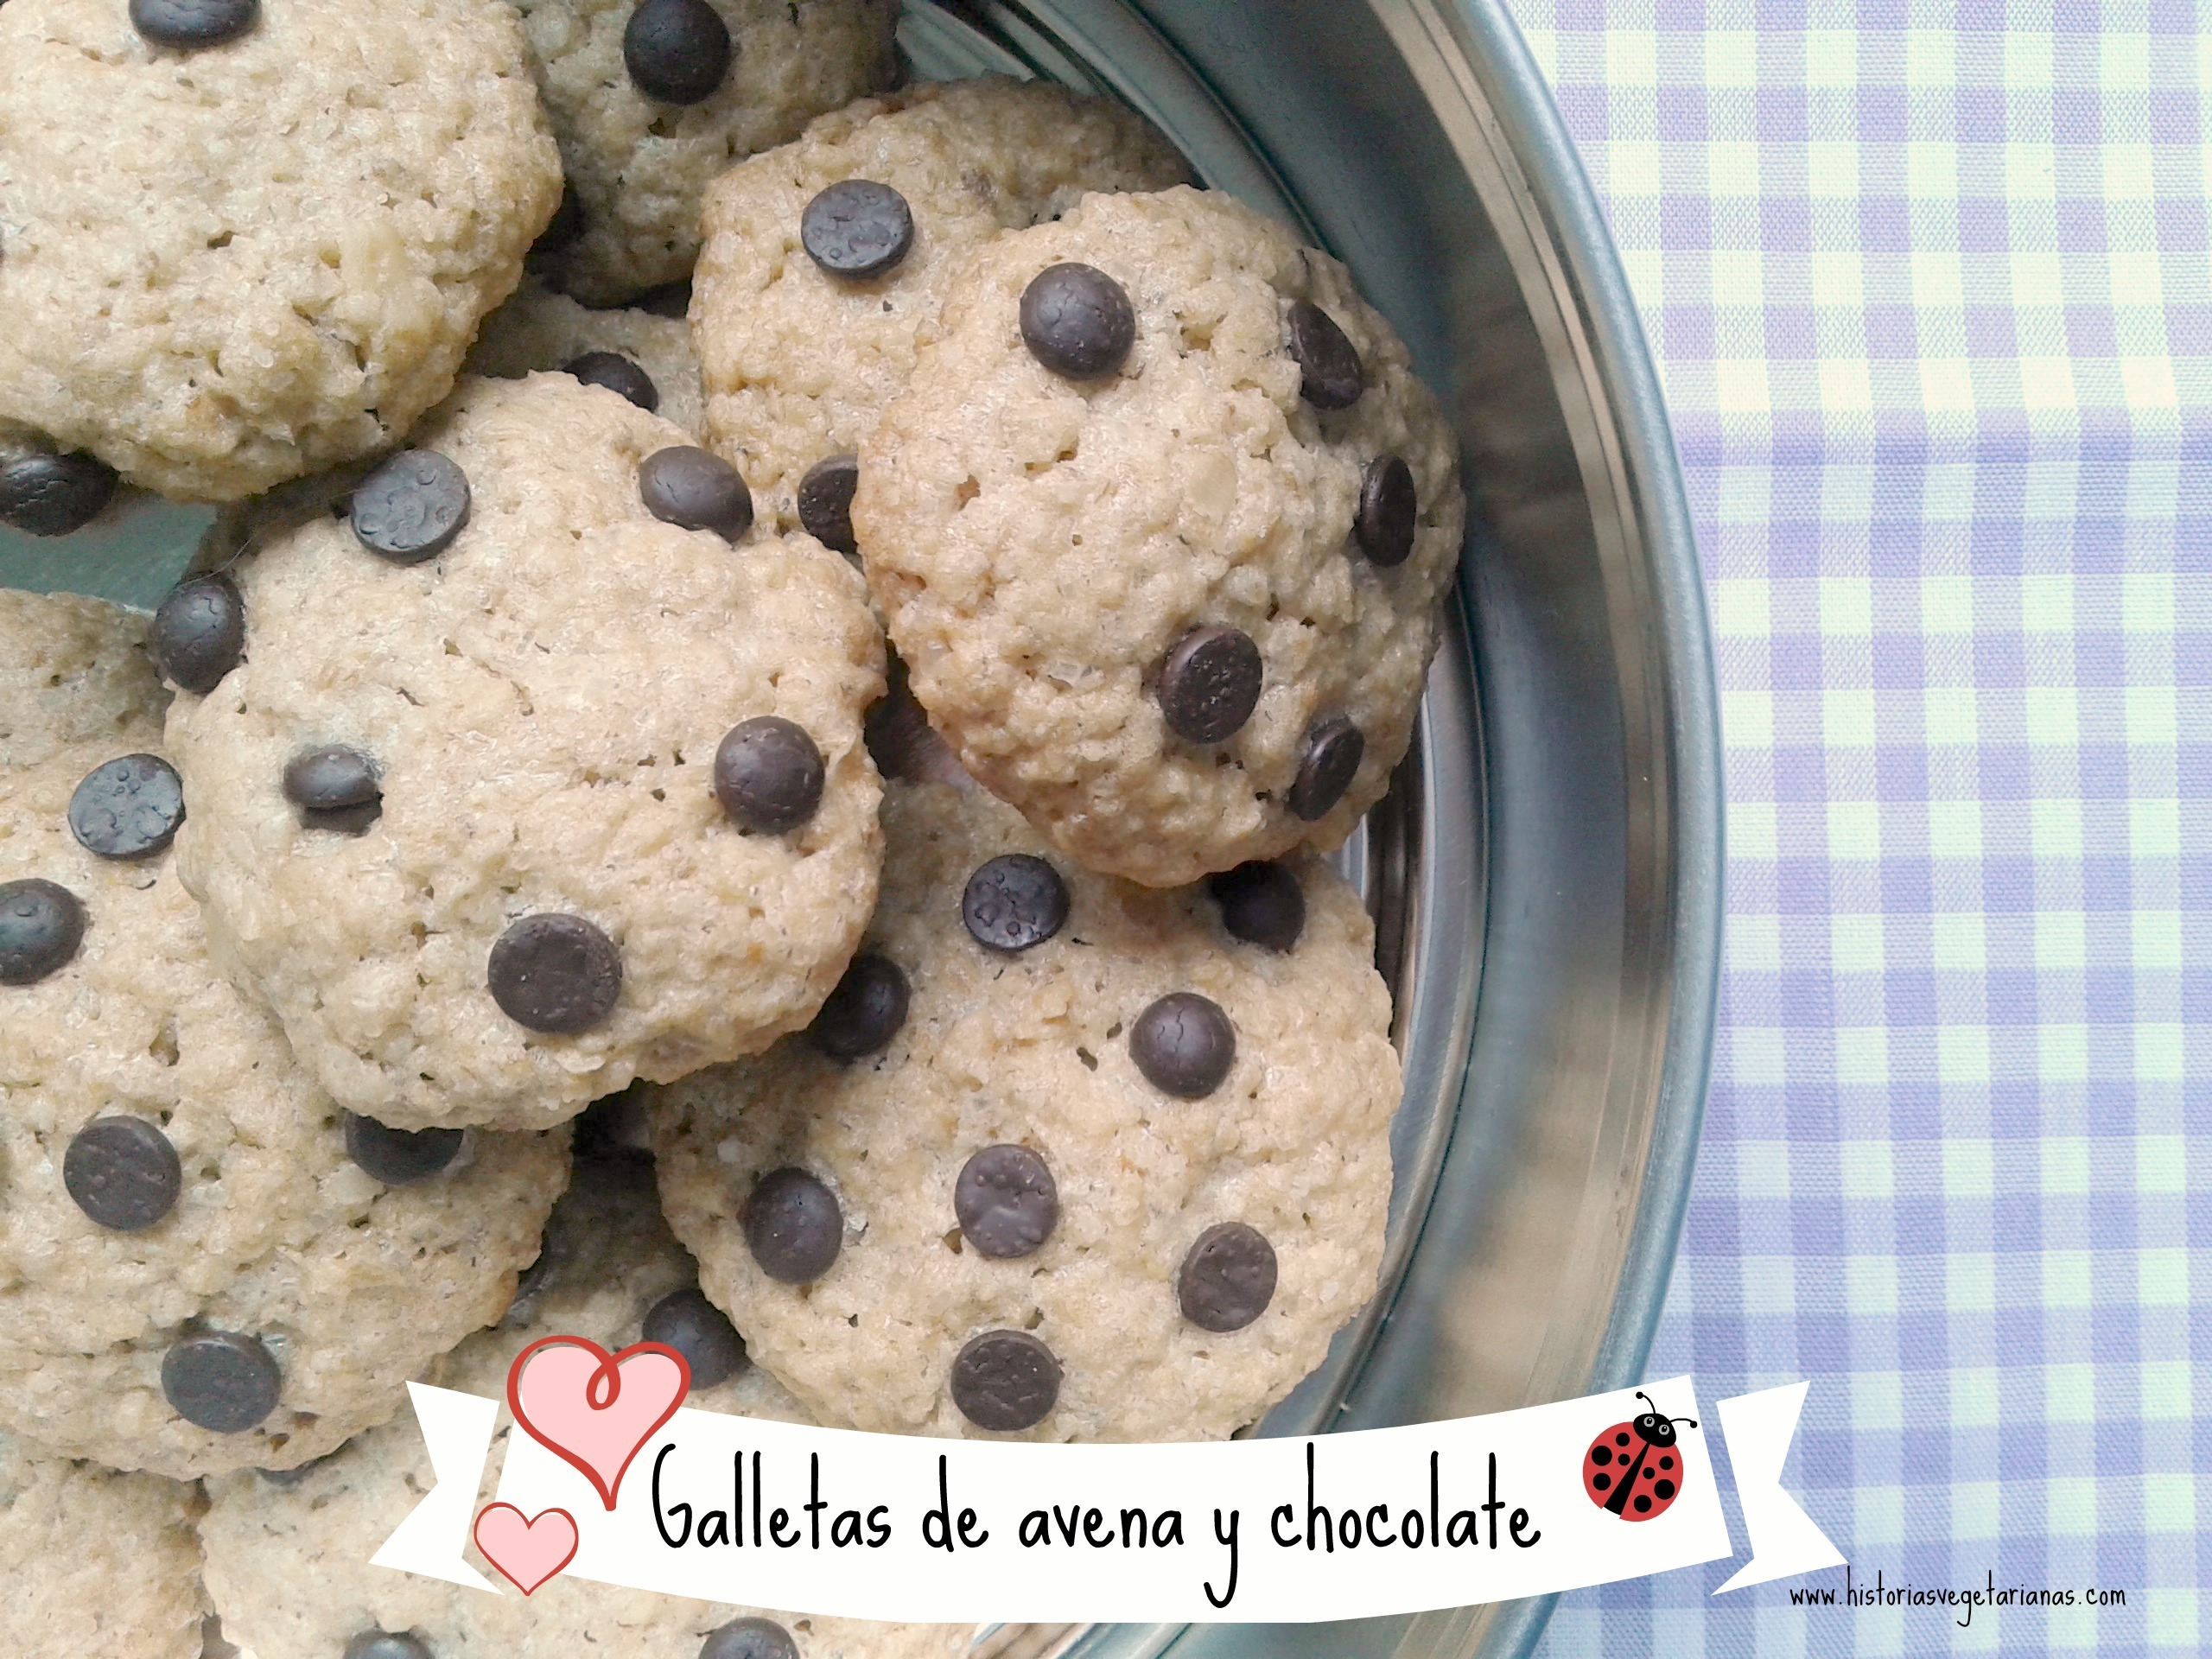 Las galletas de avena con pepitas de chocolate de mi mini chef